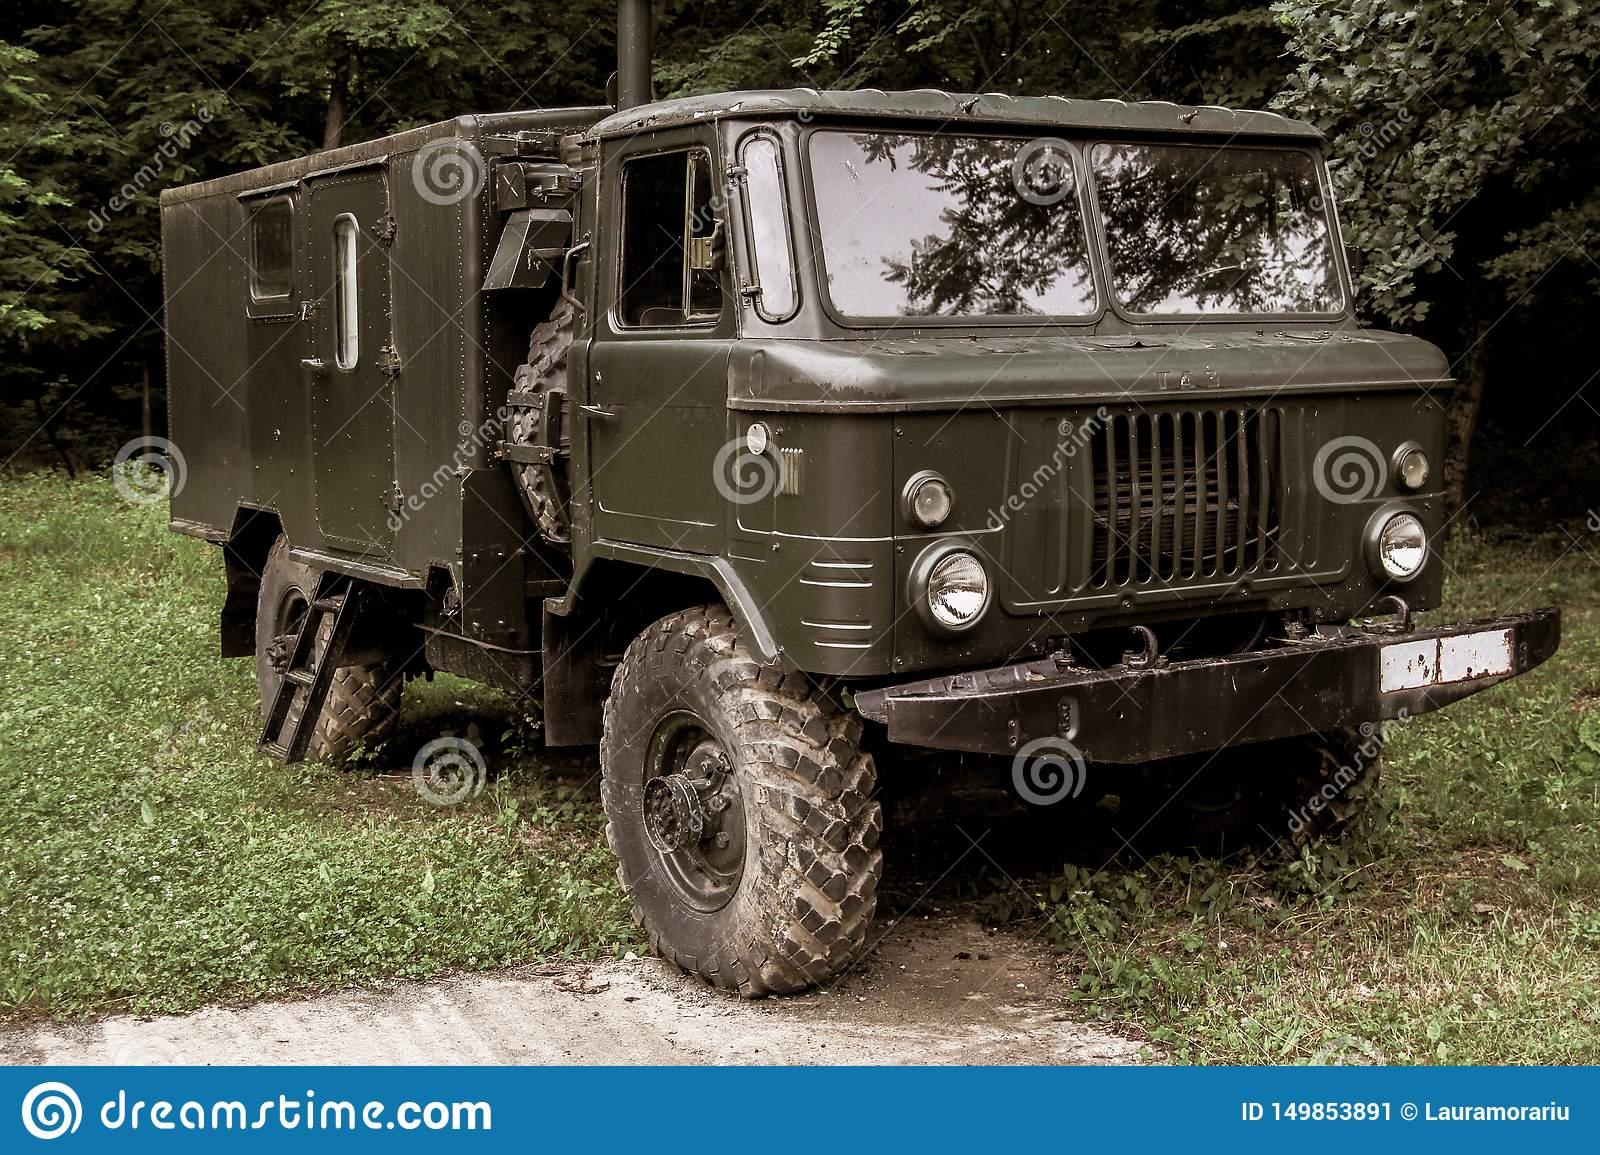 Old Vintage Military Truck Used in War